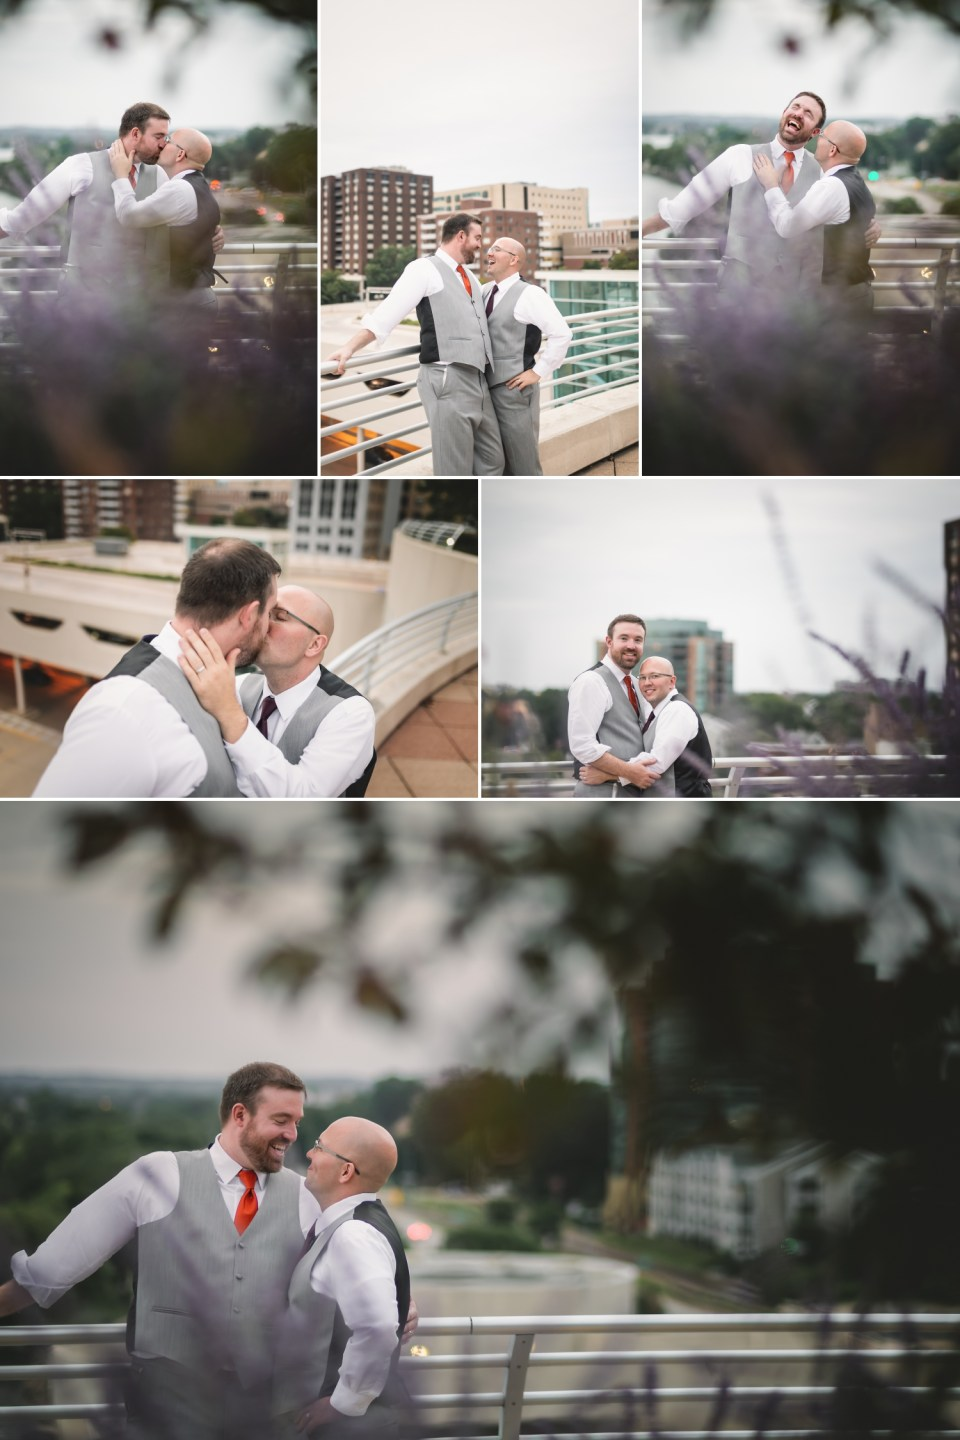 Sunset LGBTQ Wedding Photos | Pink Spruce Photography | www.pinksprucephotography.com